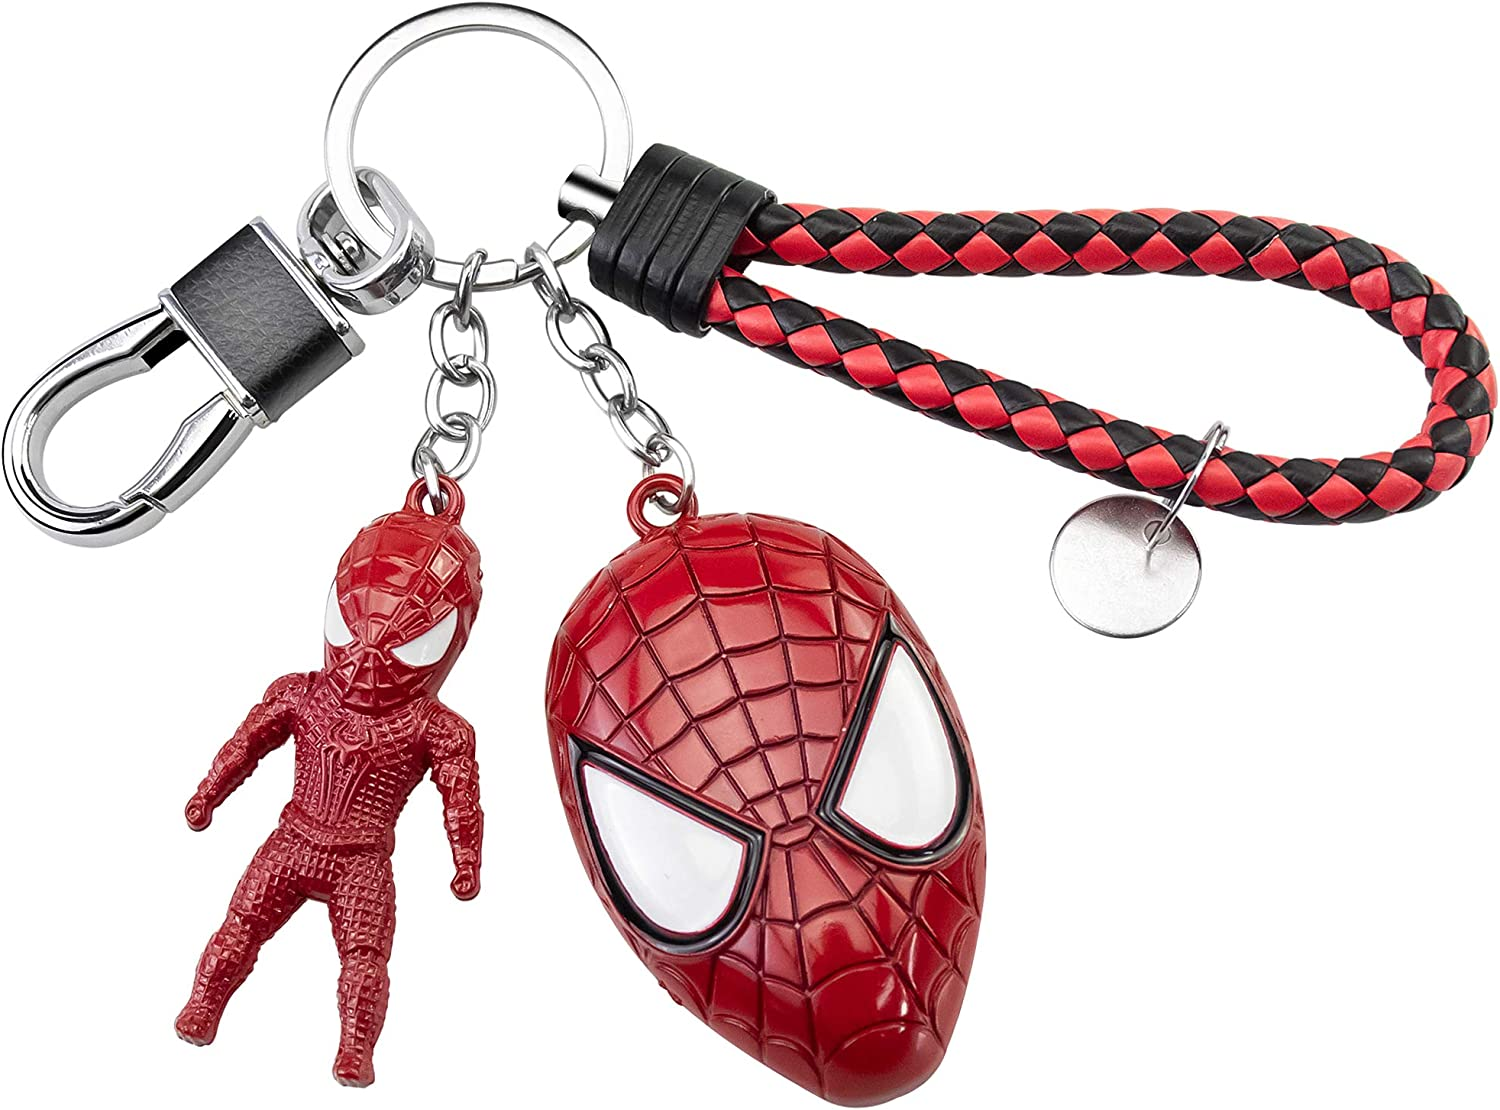 Shuji Spiderma_n Keychain-Marve_l Toys Red Alloy Key Chain 1 Set Gifts for Men Boys,98